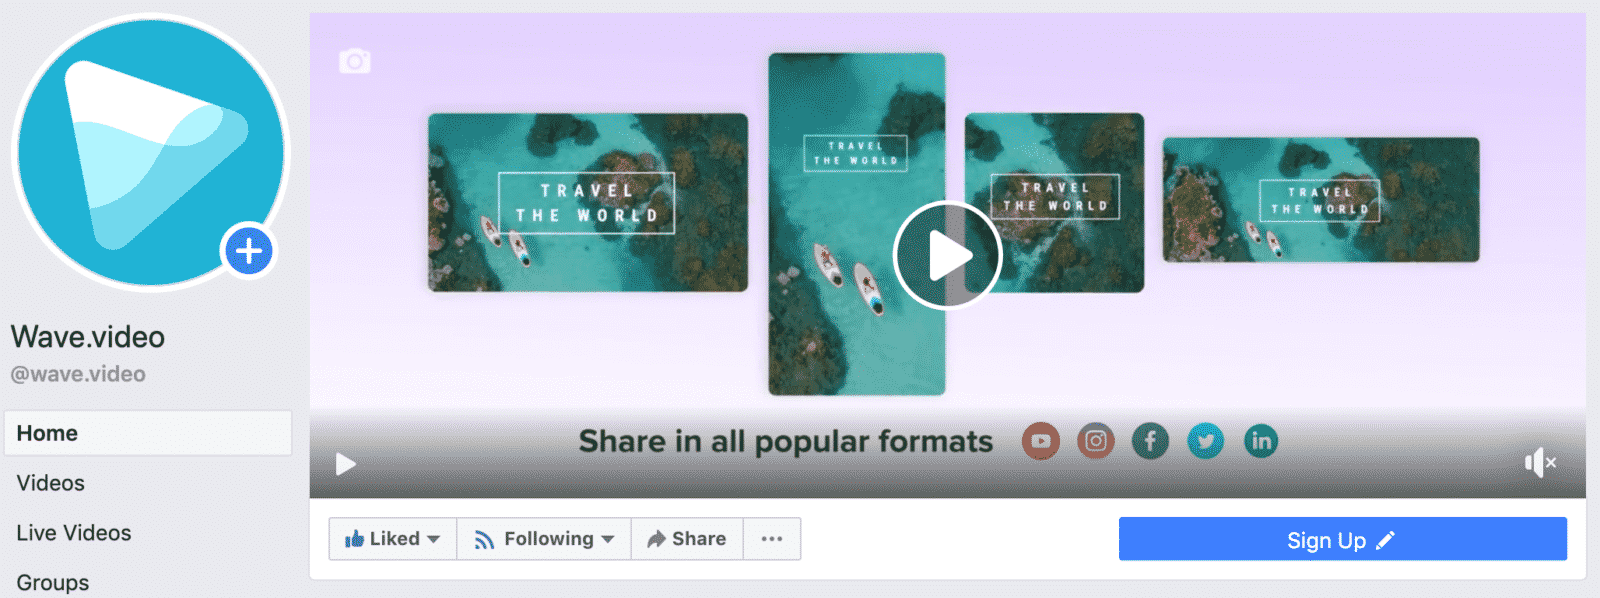 Facebook cover video Wave.video